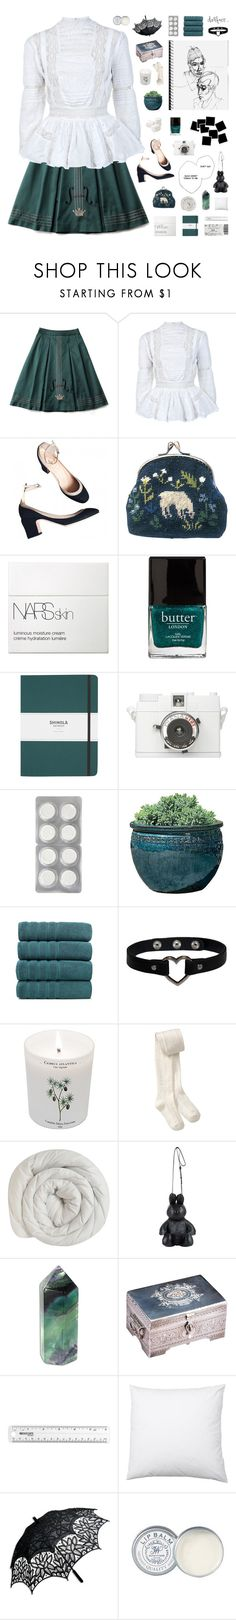 """""""♥  the ways of the universe ♥"""" by feels-like-this-could-be-forever ❤ liked on Polyvore featuring Miss Selfridge, NARS Cosmetics, Shinola, Campania International, Makroteks, Carriere, Old Navy, MCM, INC International Concepts and Jack Wills"""